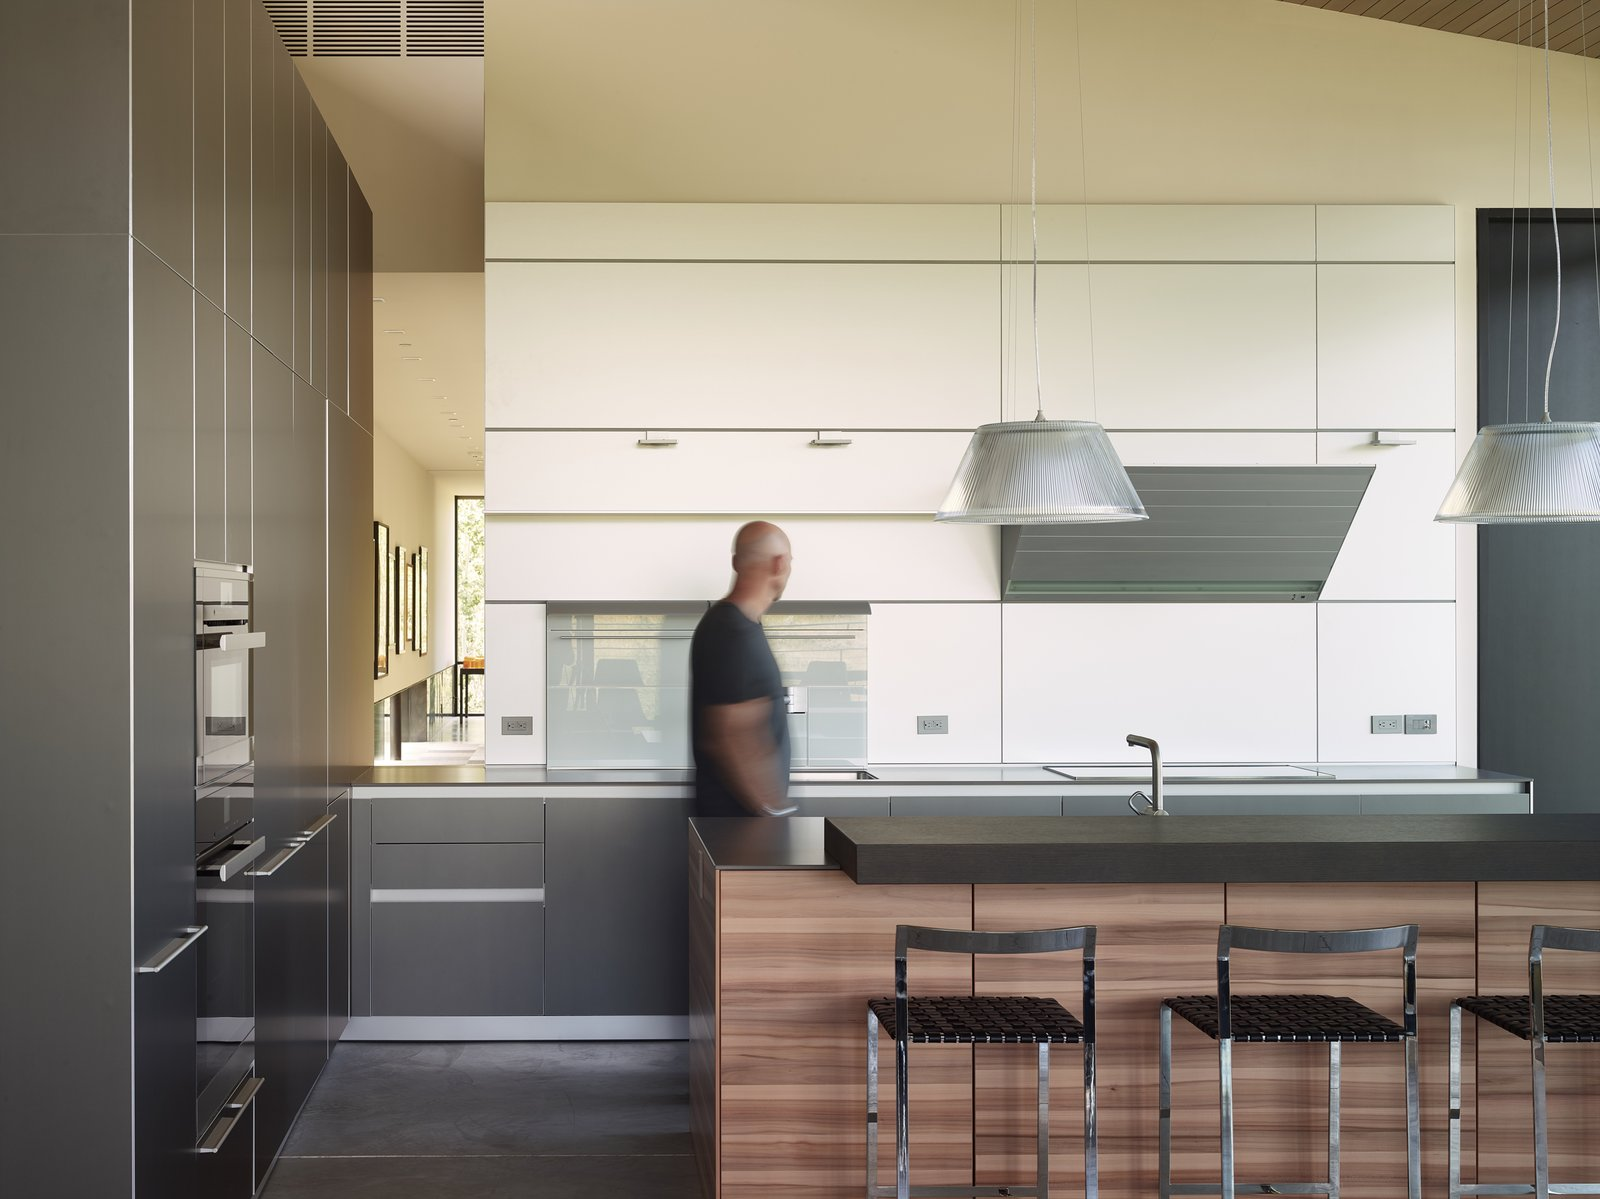 Kitchen, Wood Cabinet, White Cabinet, Pendant Lighting, Concrete Floor, Cooktops, and Wall Oven The minimal kitchen design is apportioned with tri-colored cabinets and a clever opening through that overlooks the gallery.  Wyoming Residence by Abramson Teiger Architects